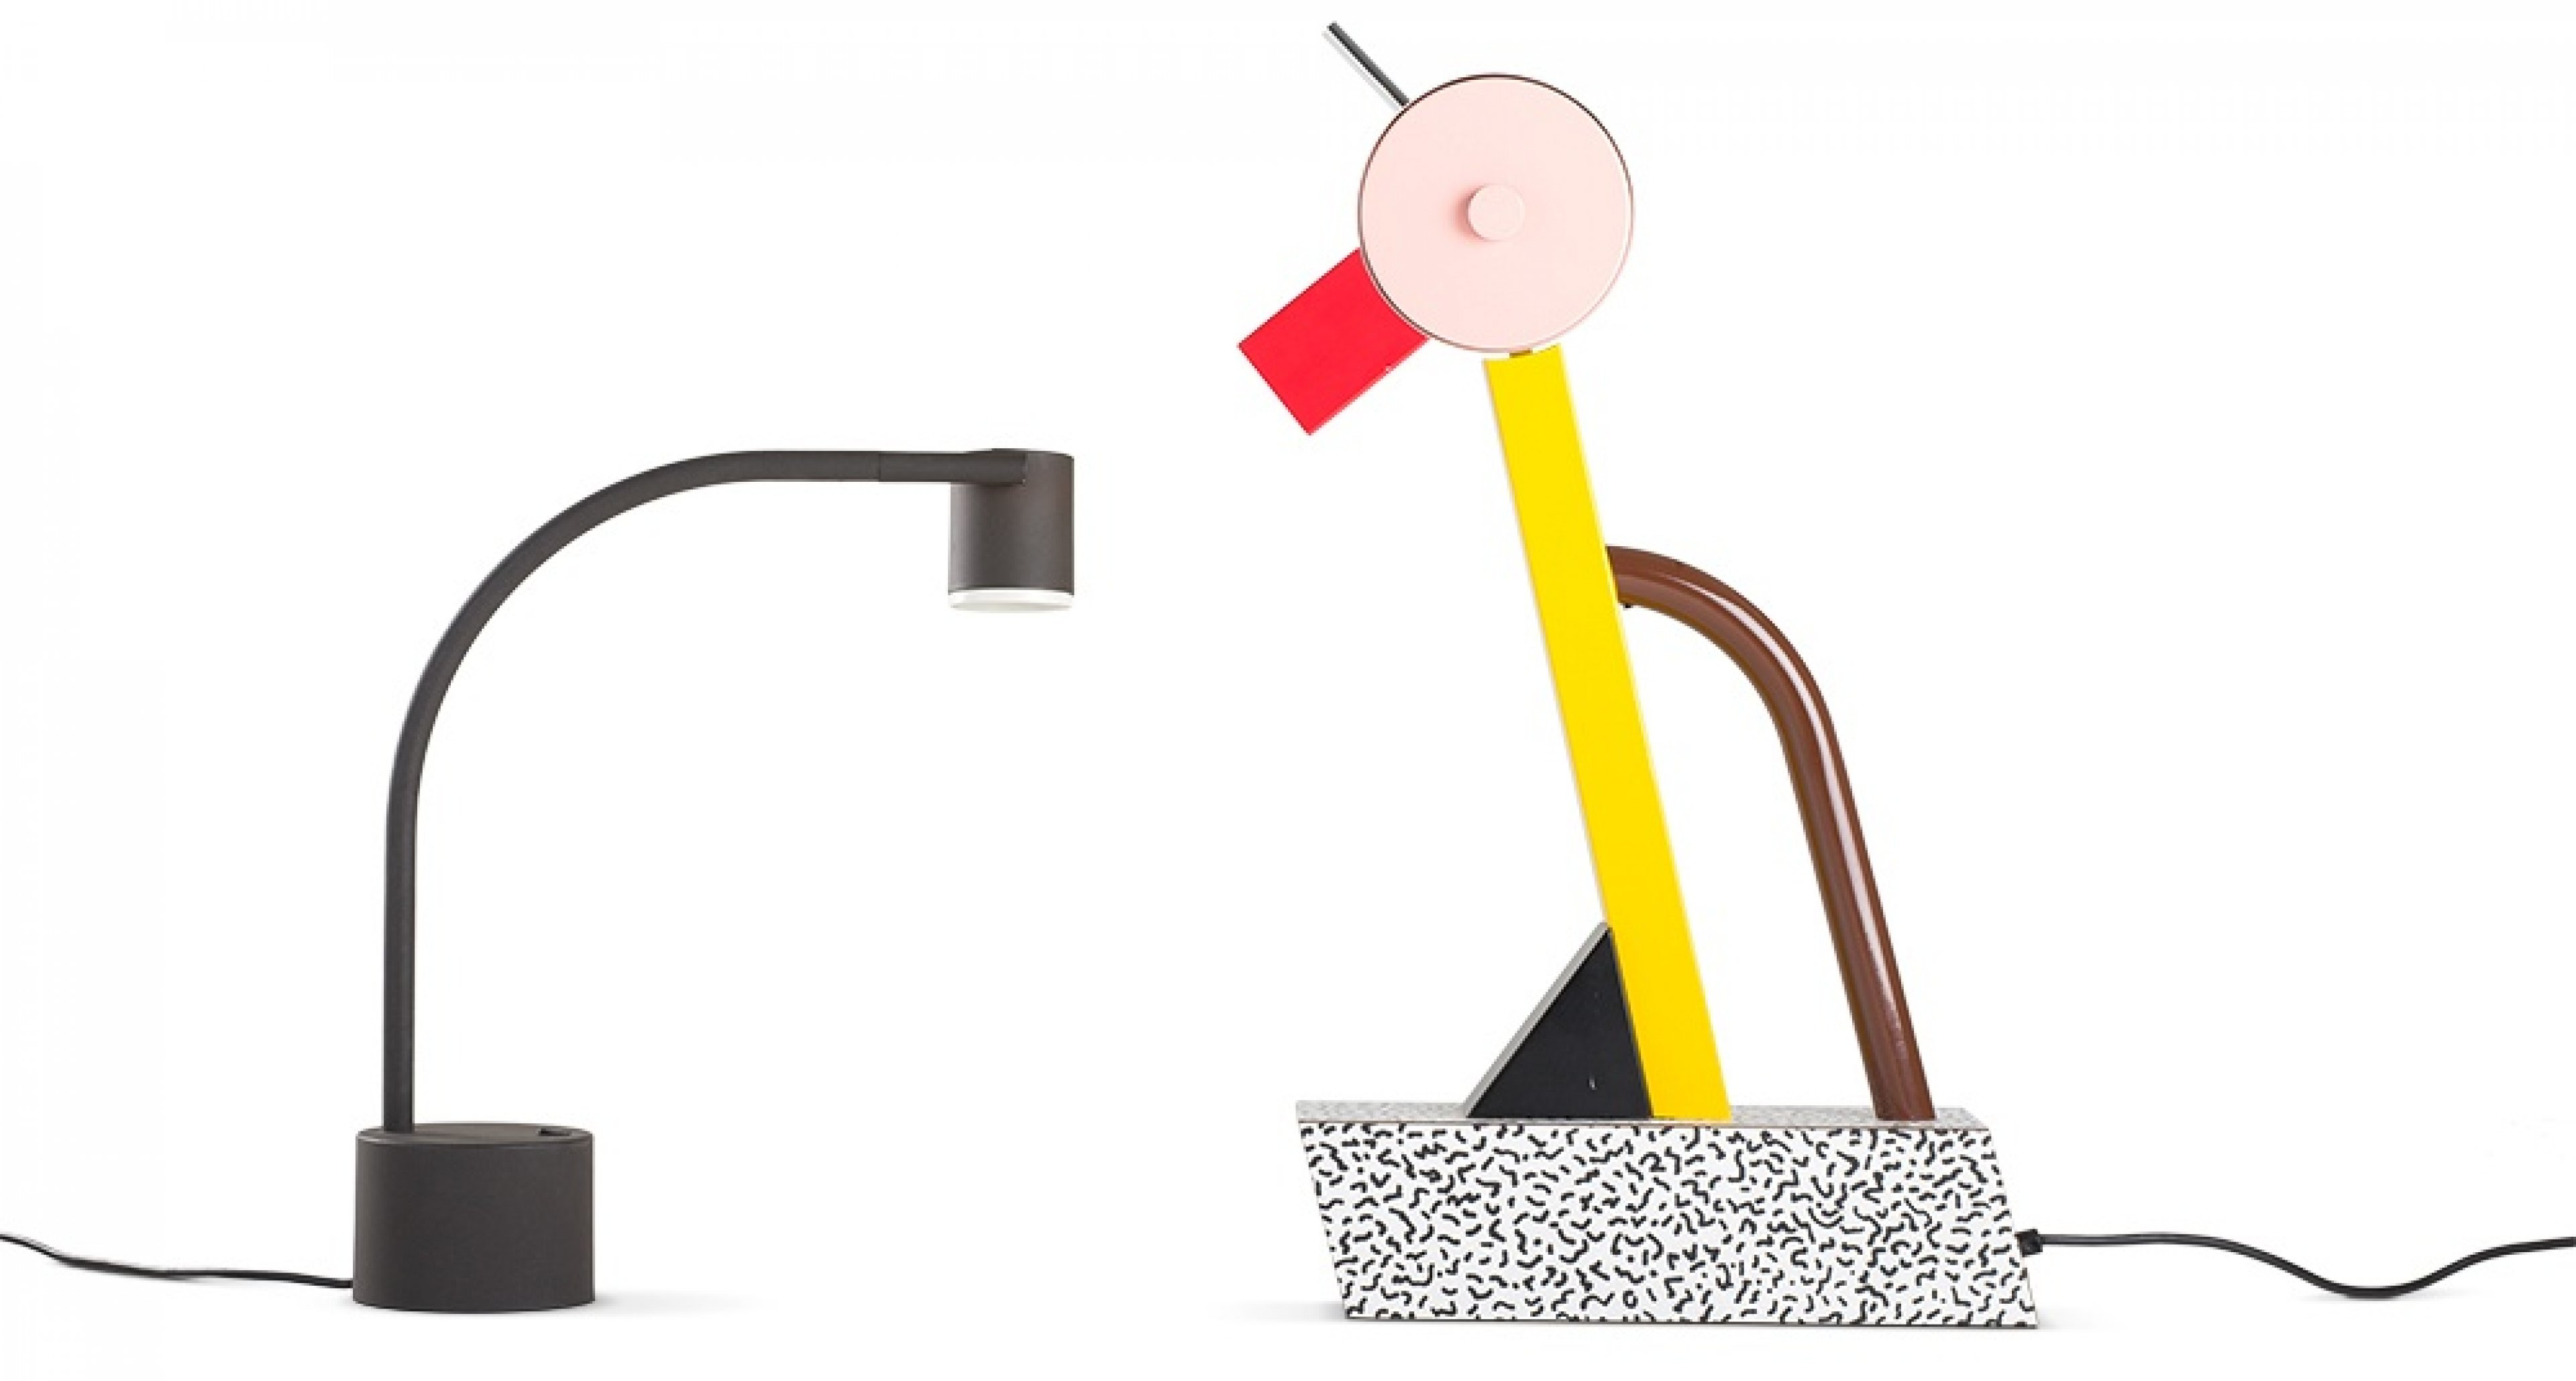 Table lamps Halo Click ca. 1988 (Manufactured by Philips) and Tahiti, 1981, (Manufactured by Memphis). Photo by Jürgen Hans